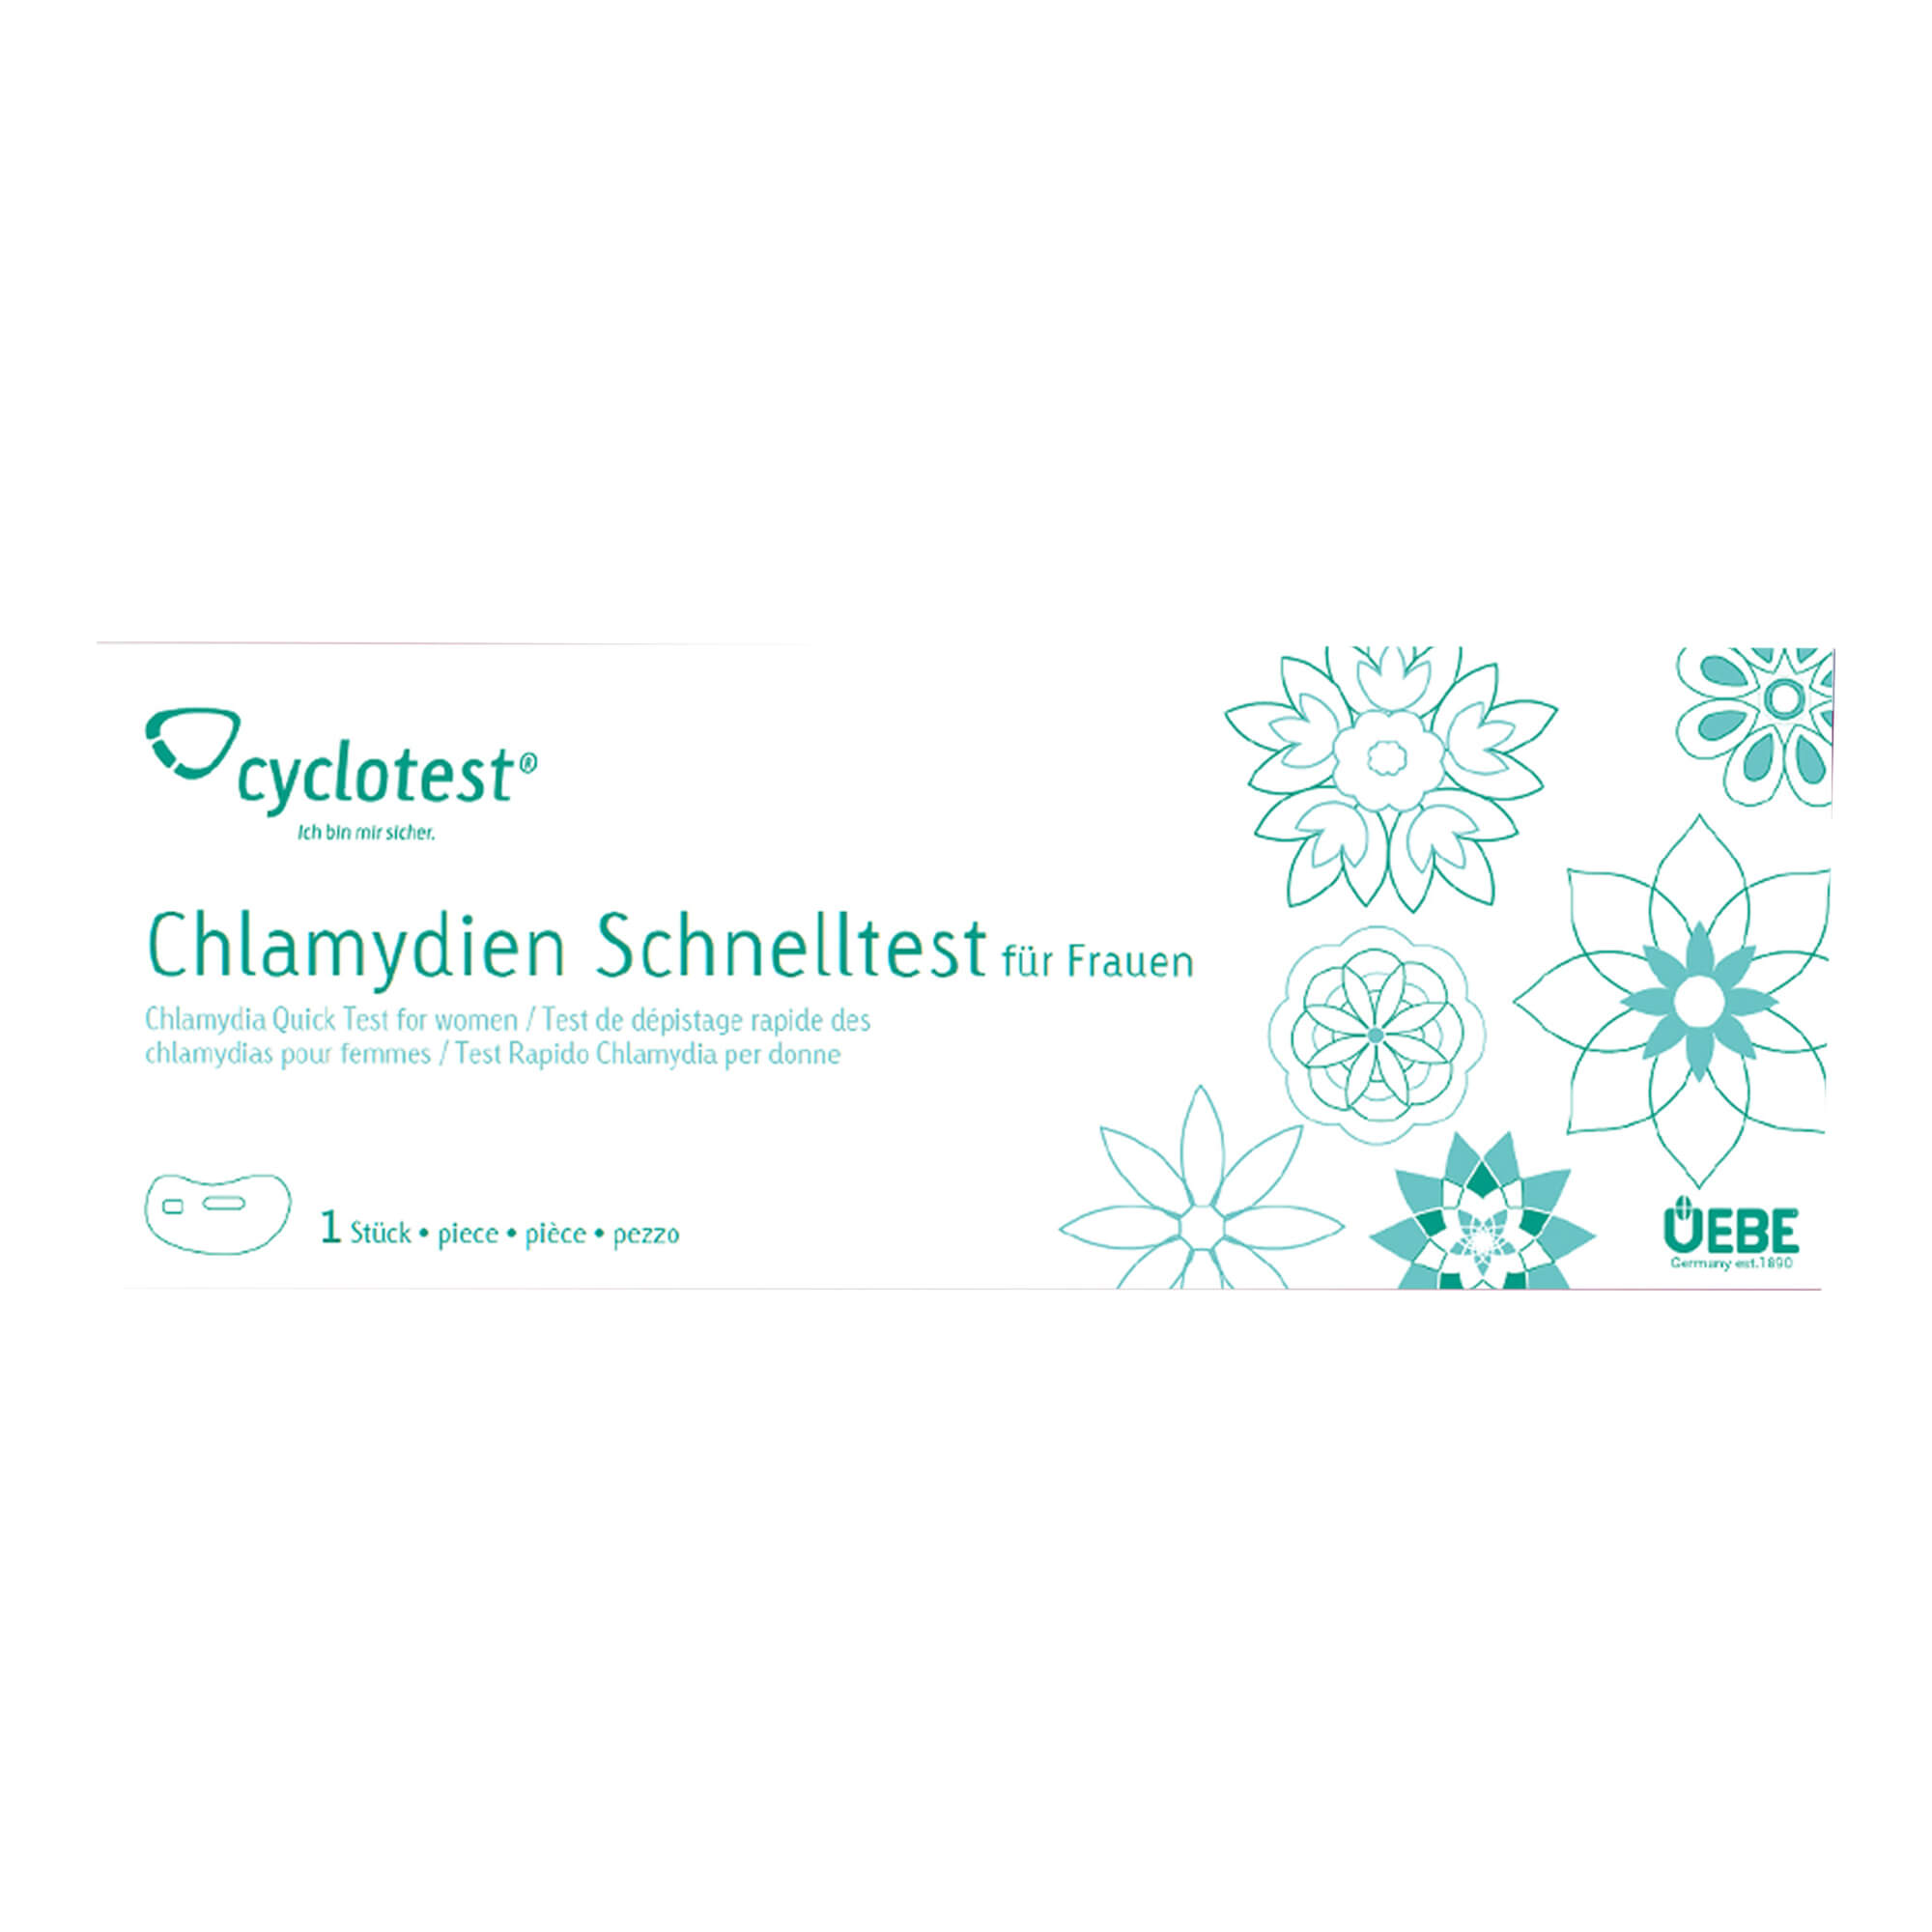 Cyclotest Chlamydien